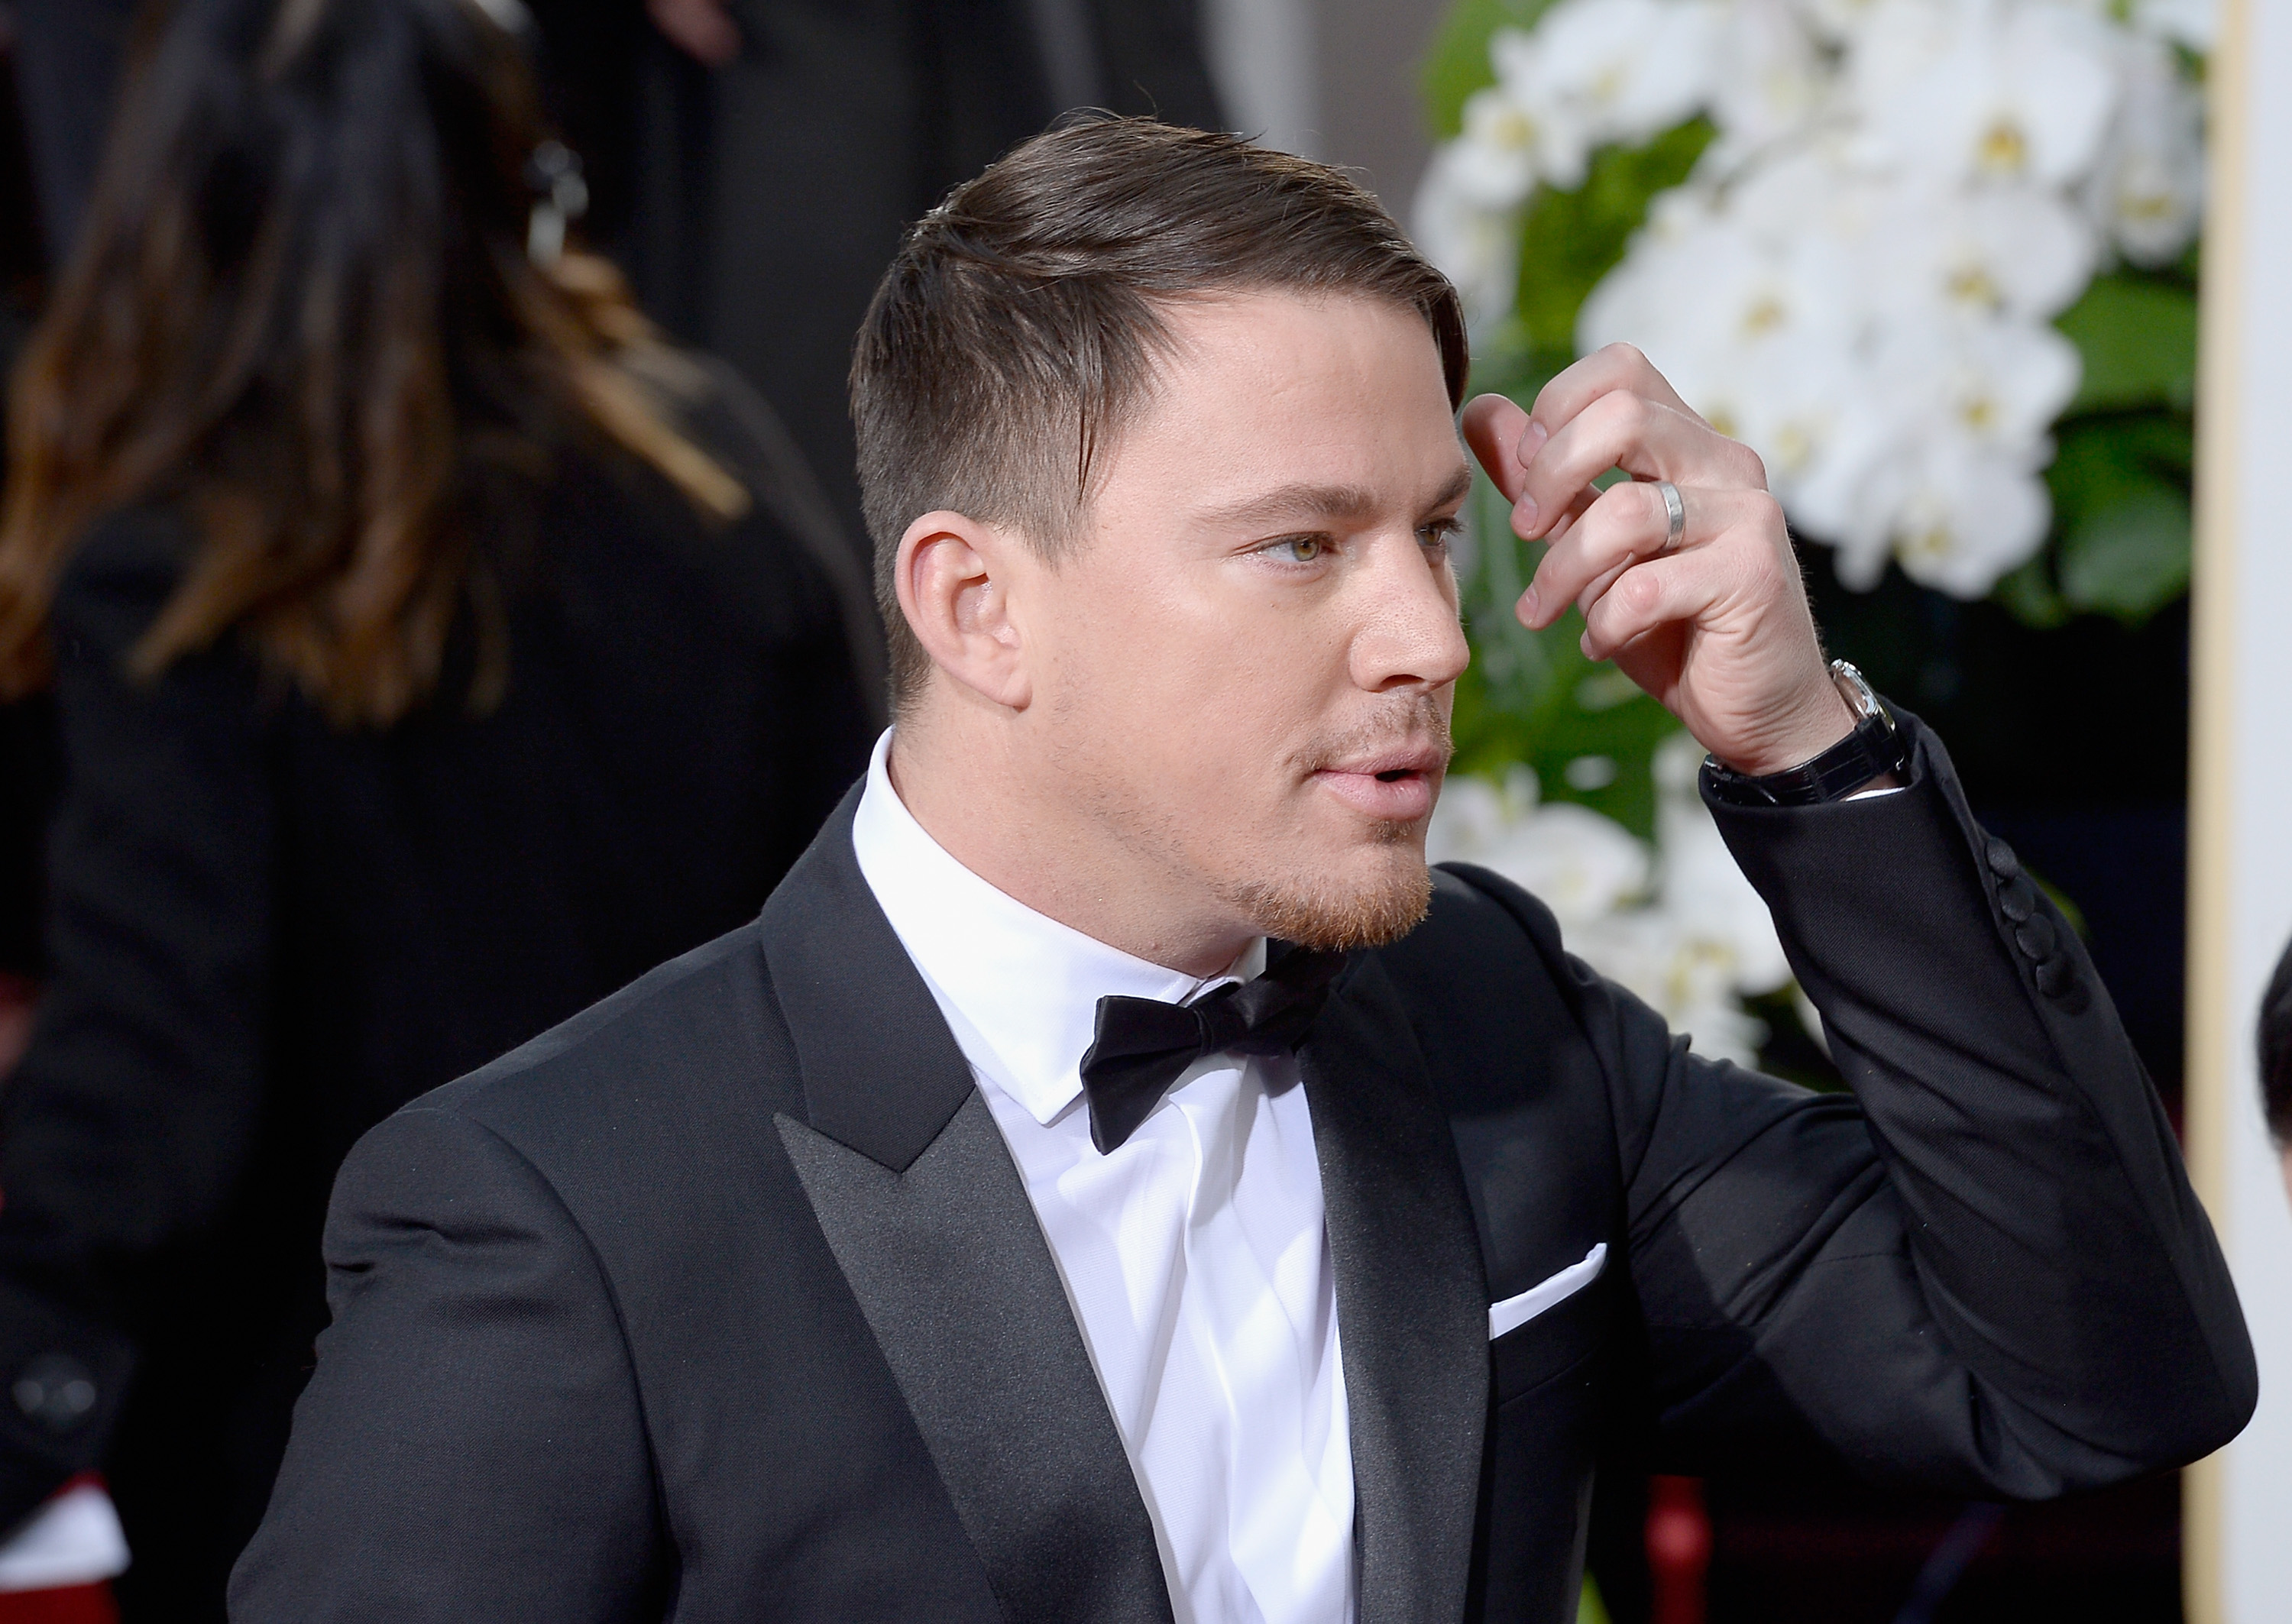 Channing Tatum arrives to the 73rd Annual Golden Globe Awards on Jan. 10, 2016 in Beverly Hills.